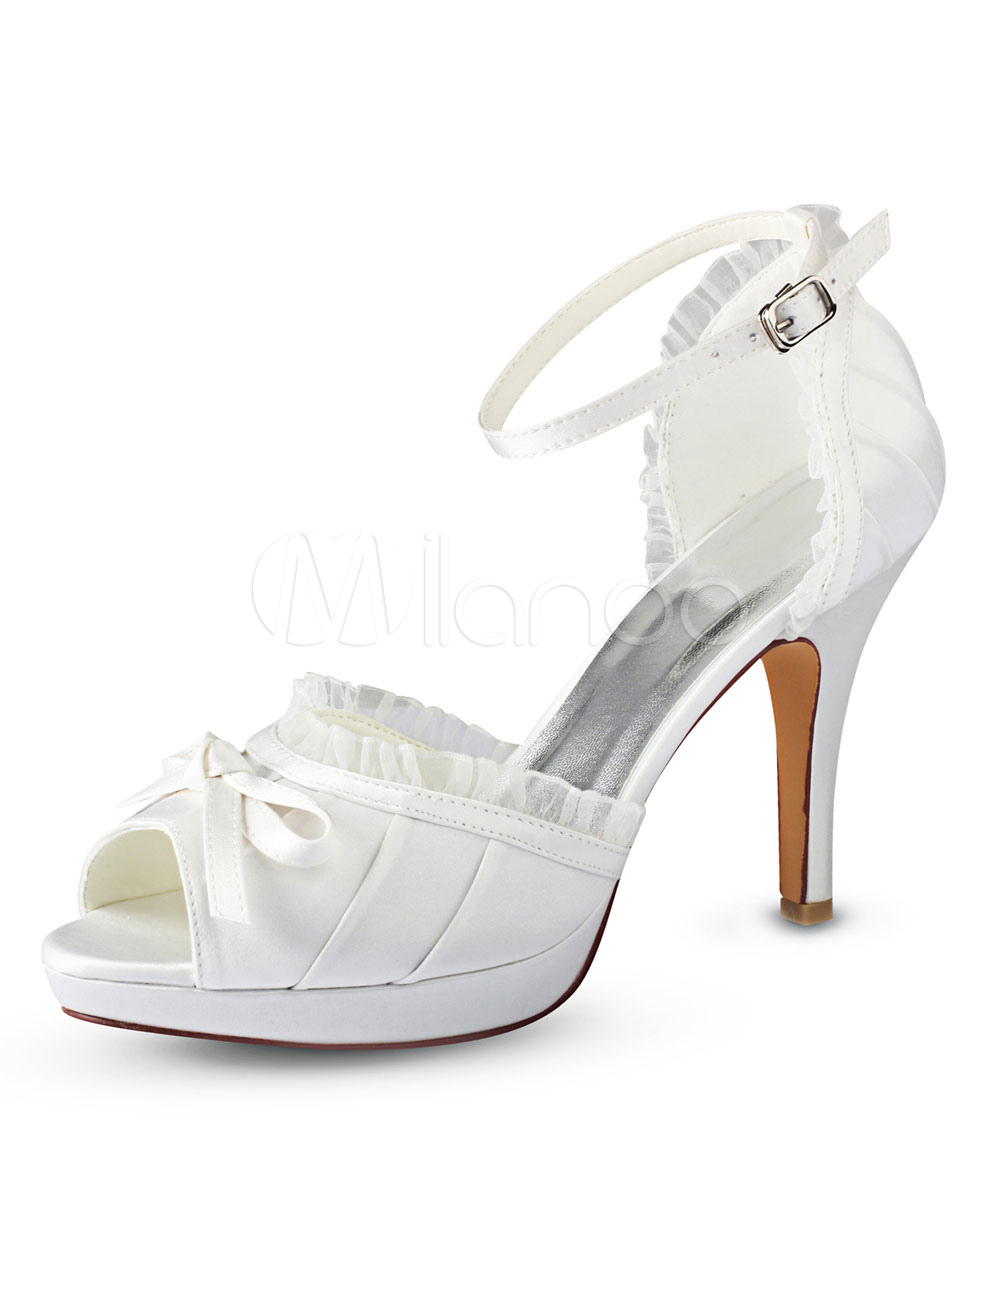 Buy Ivory Wedding Shoes Peep Toe Bow Ankle Strap Bridal Shoes High Heels for $59.99 in Milanoo store